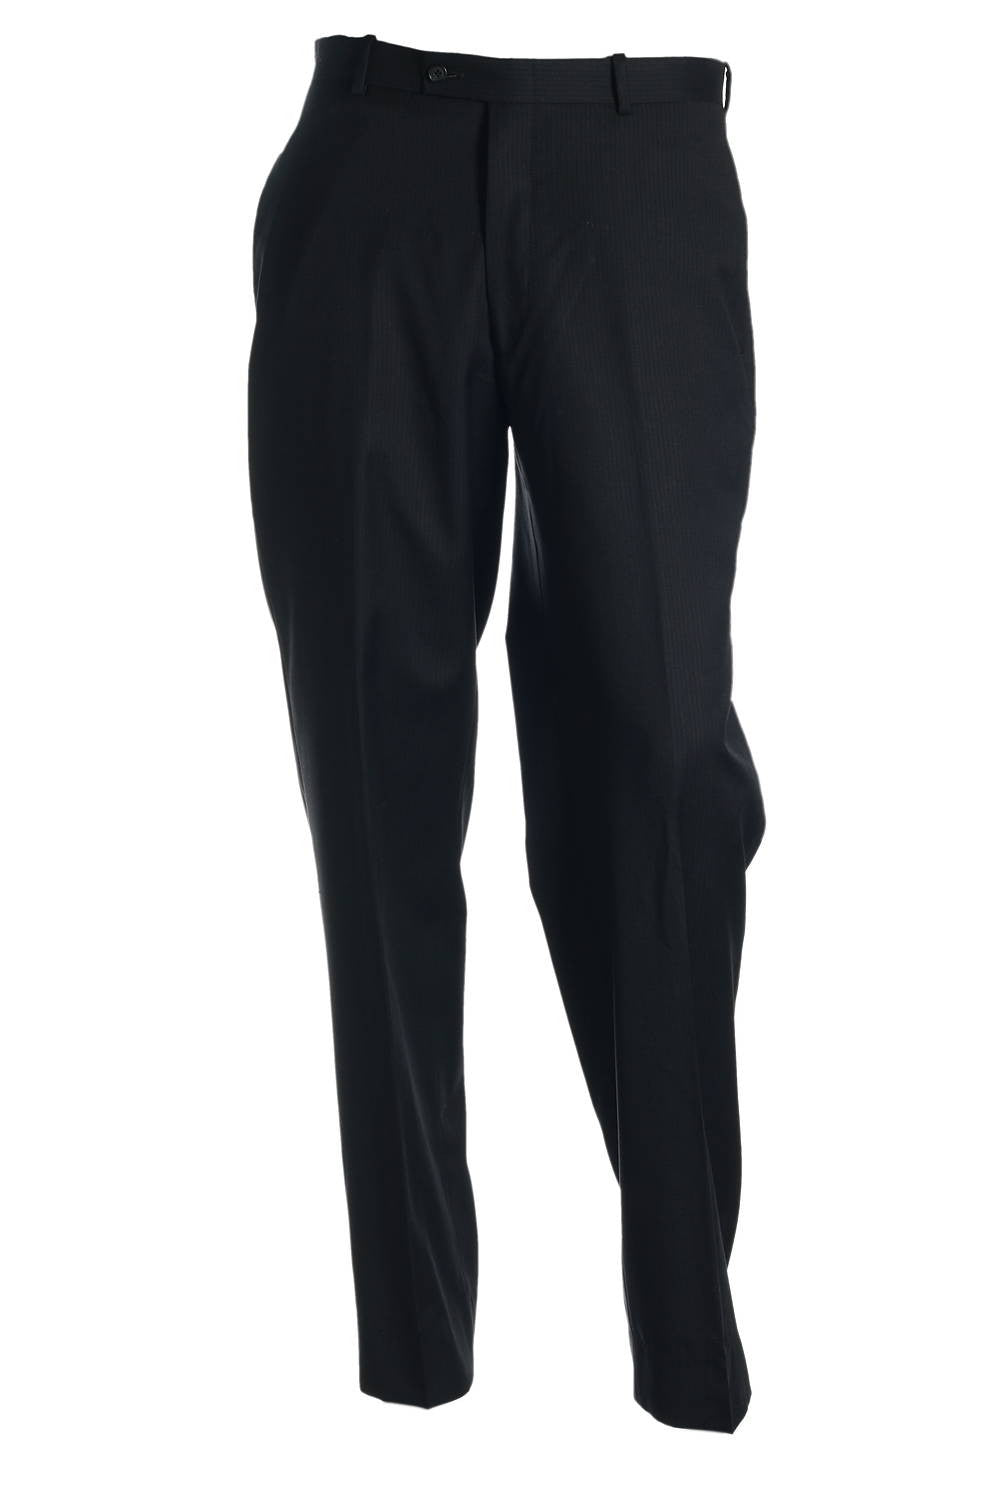 Alfani Mens Blue Pinstripe Flat Front Dress Pants